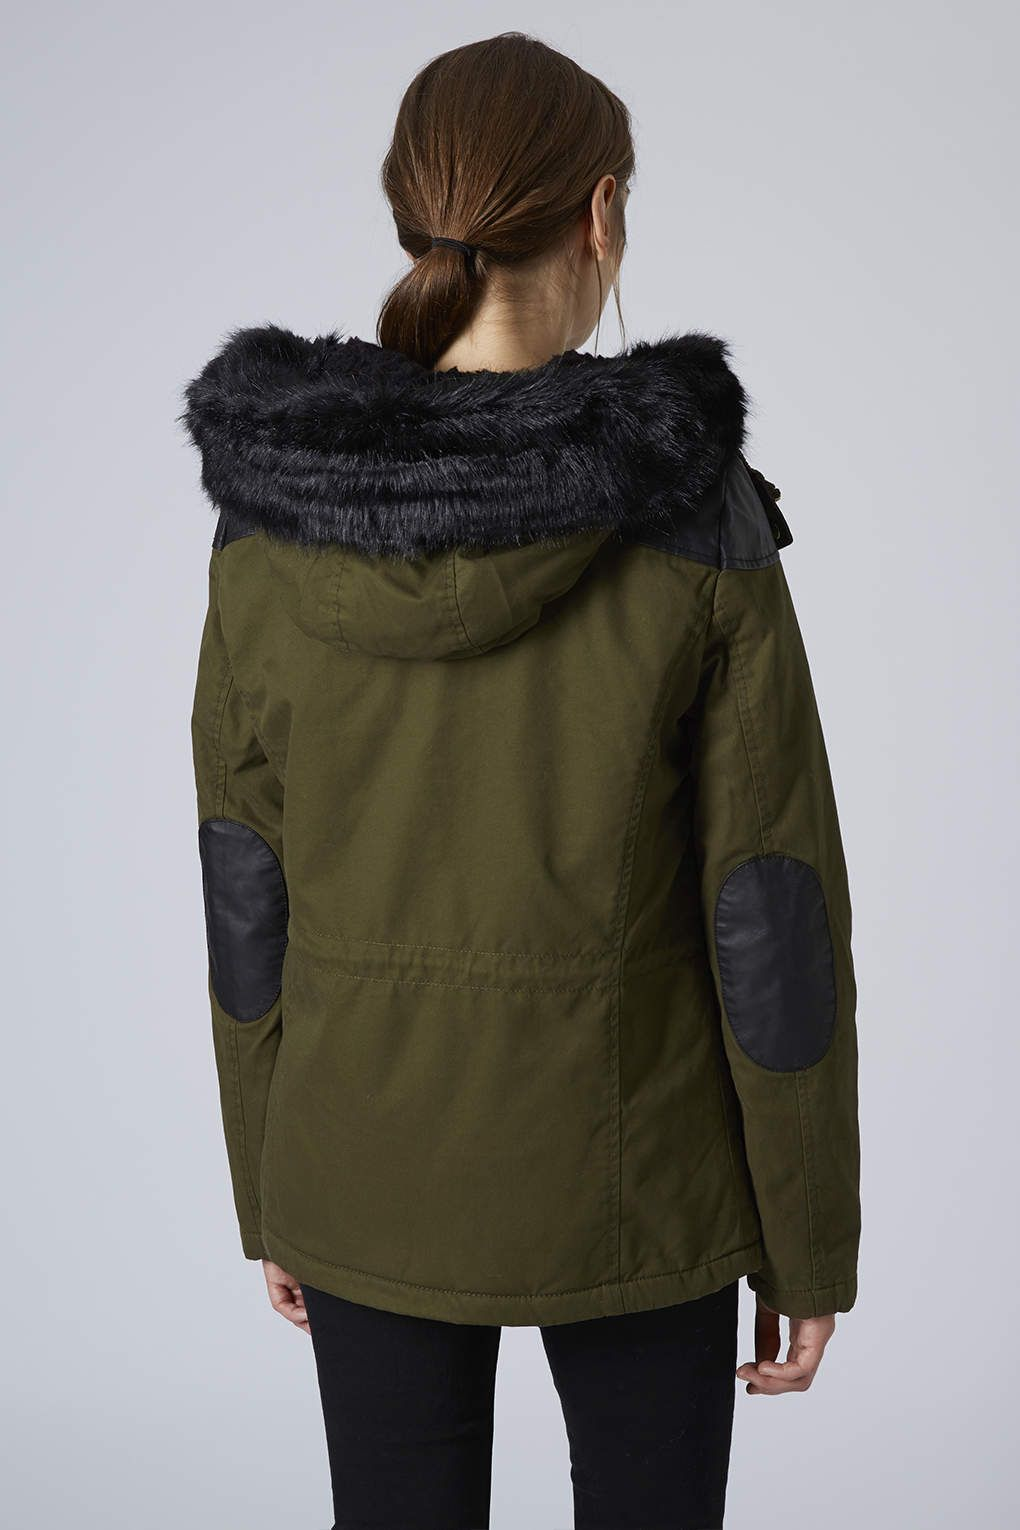 Short Padded Parka Jacket - Jackets & Coats - Clothing | Shorts ...